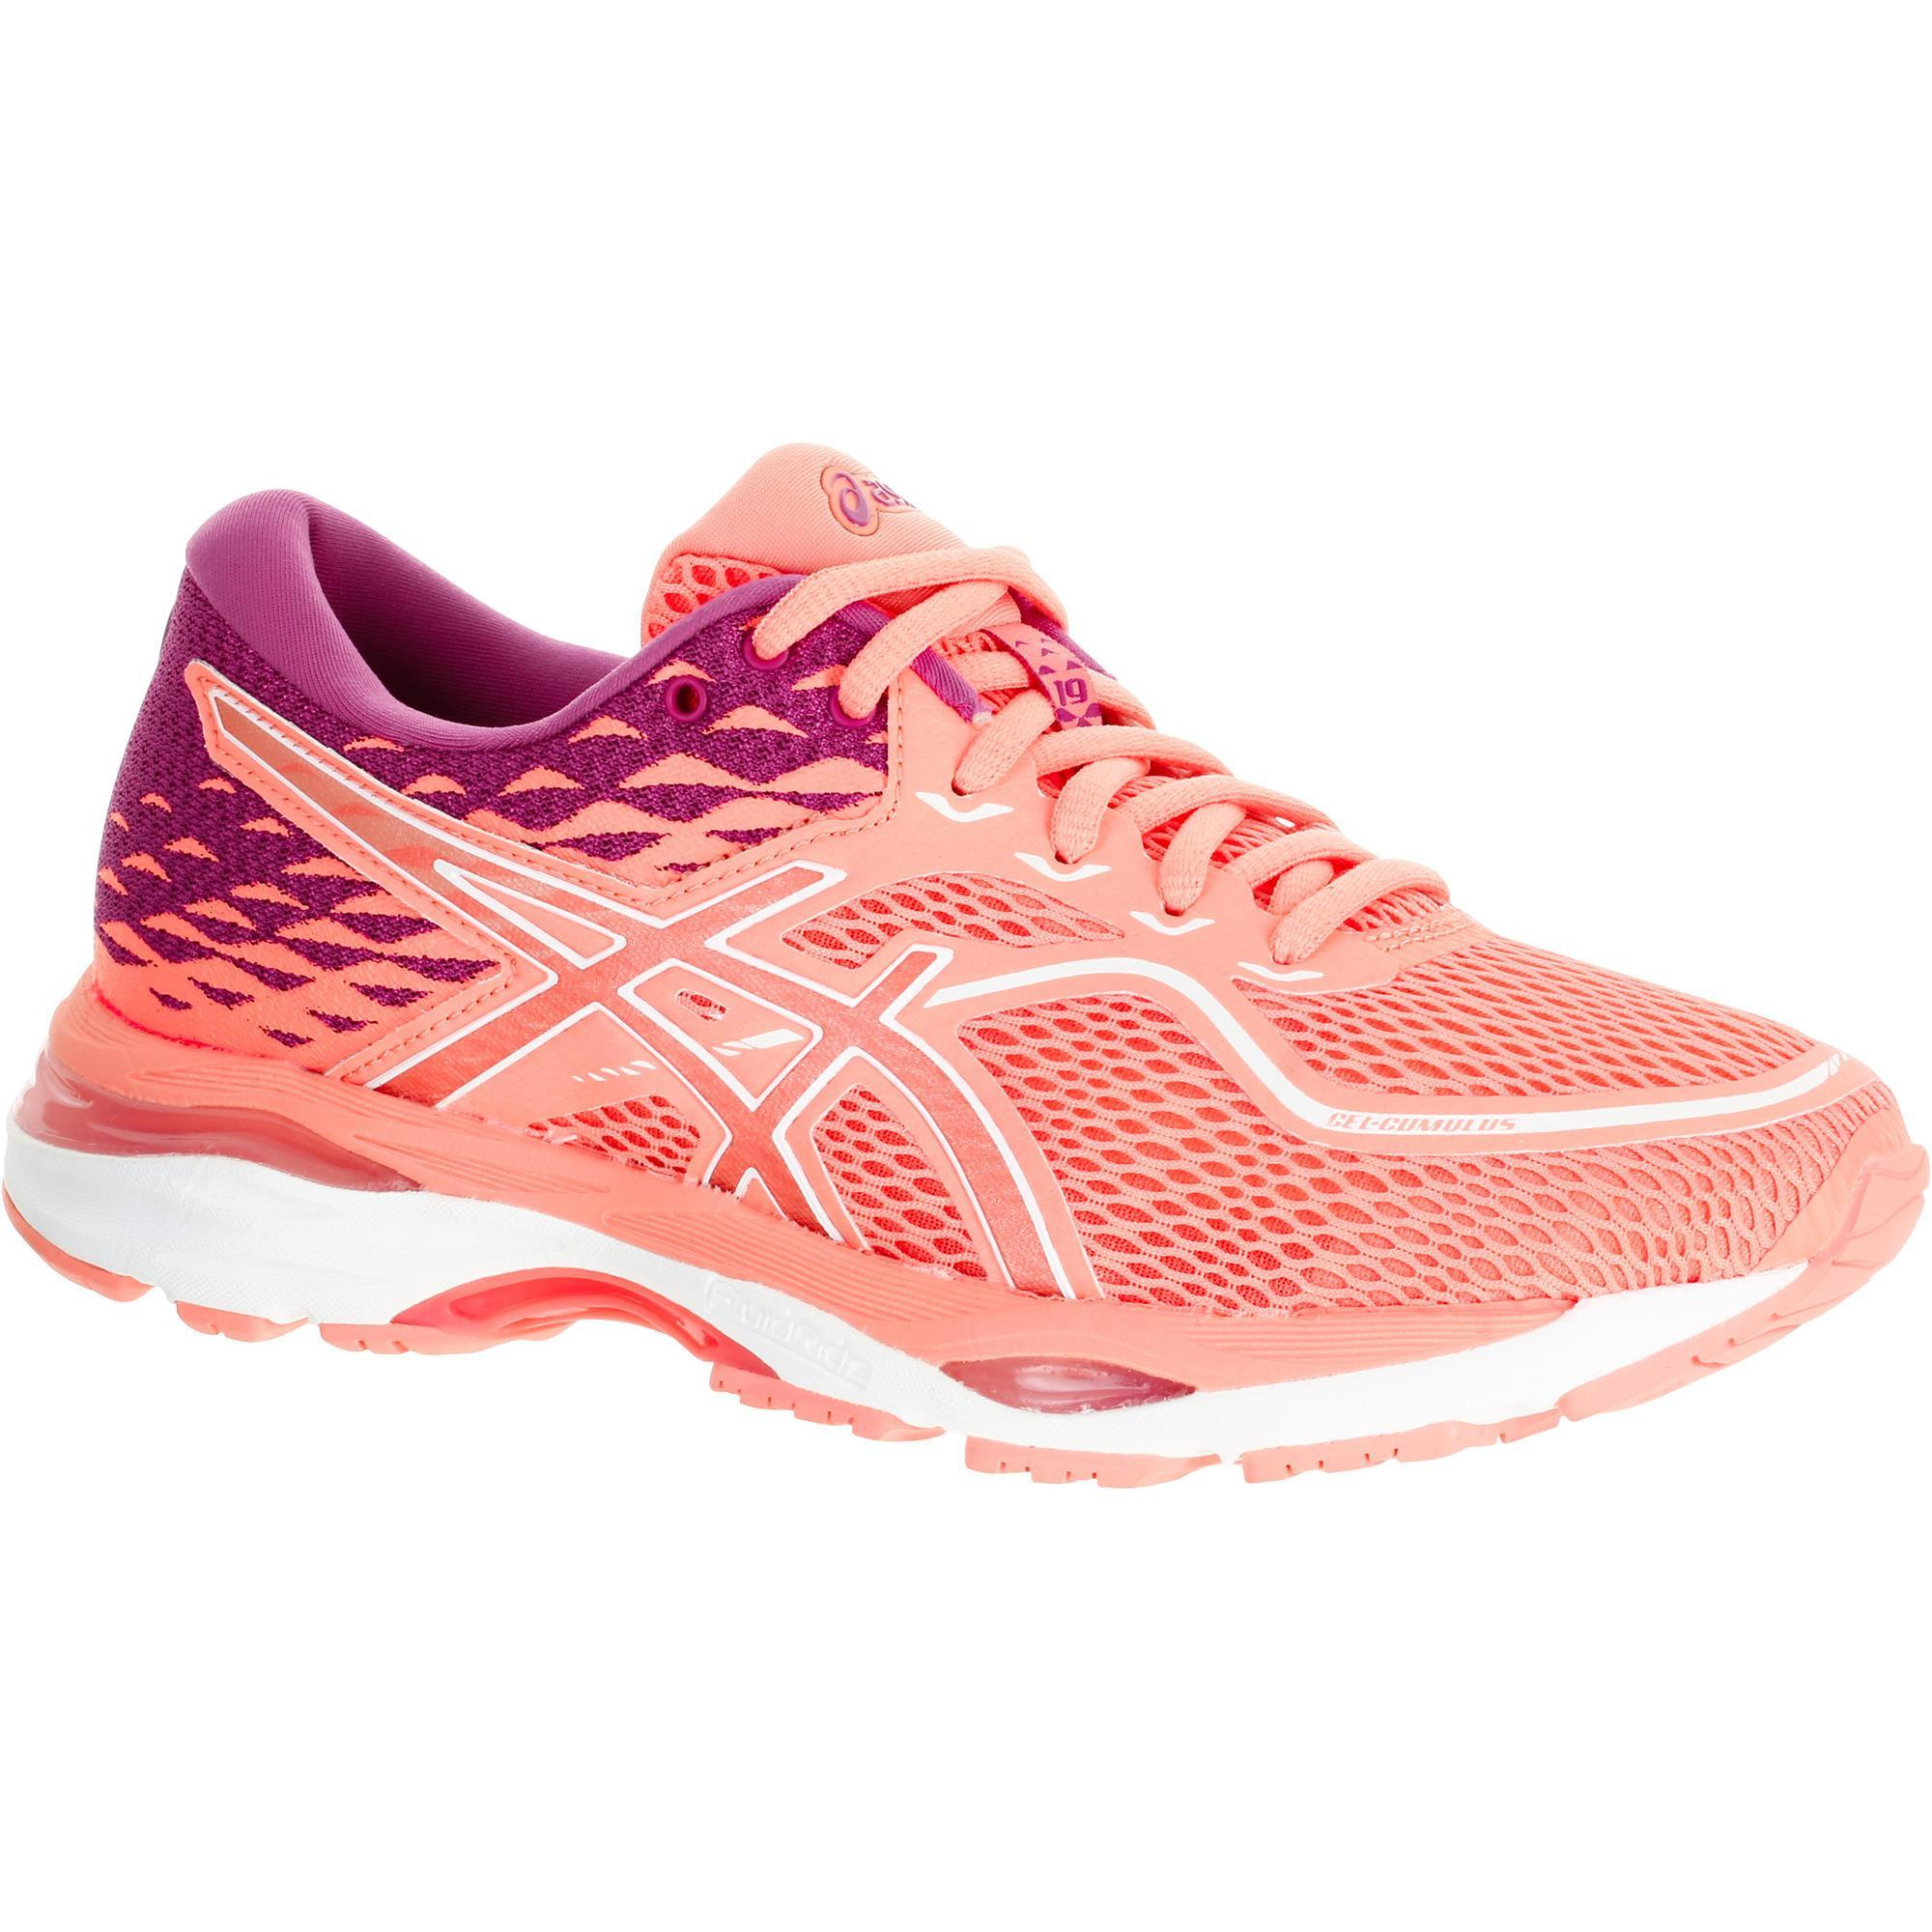 7d6eb5f0362 chaussure asics course pied